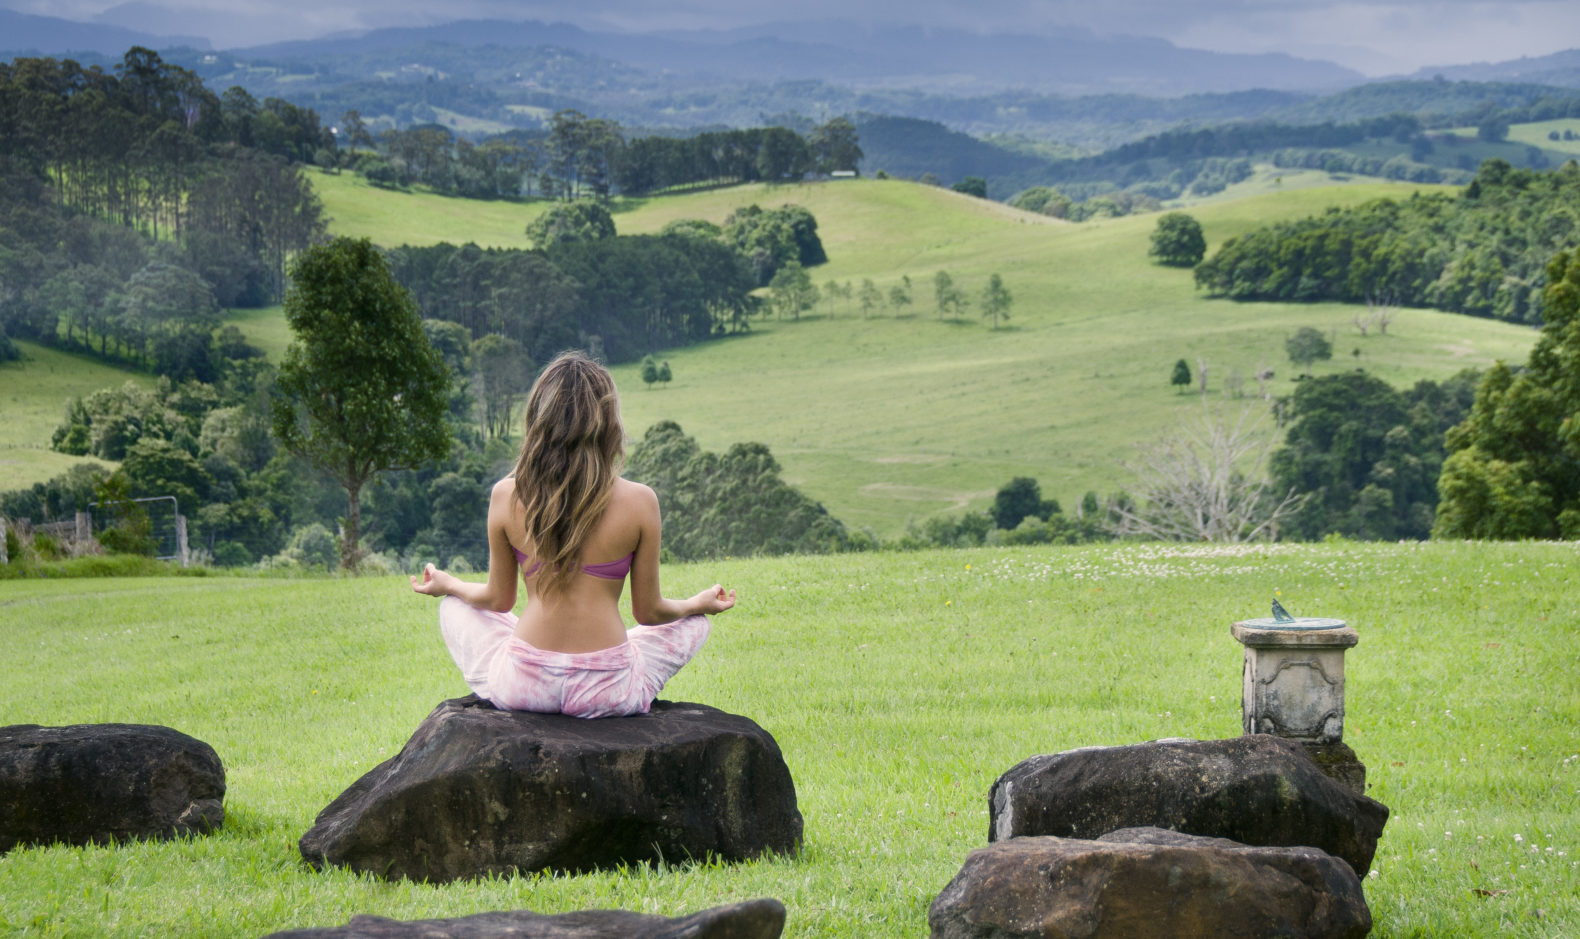 woman-meditating-rock-green-nature-landscape-drifting-away-gaia-retreat-spa-australia